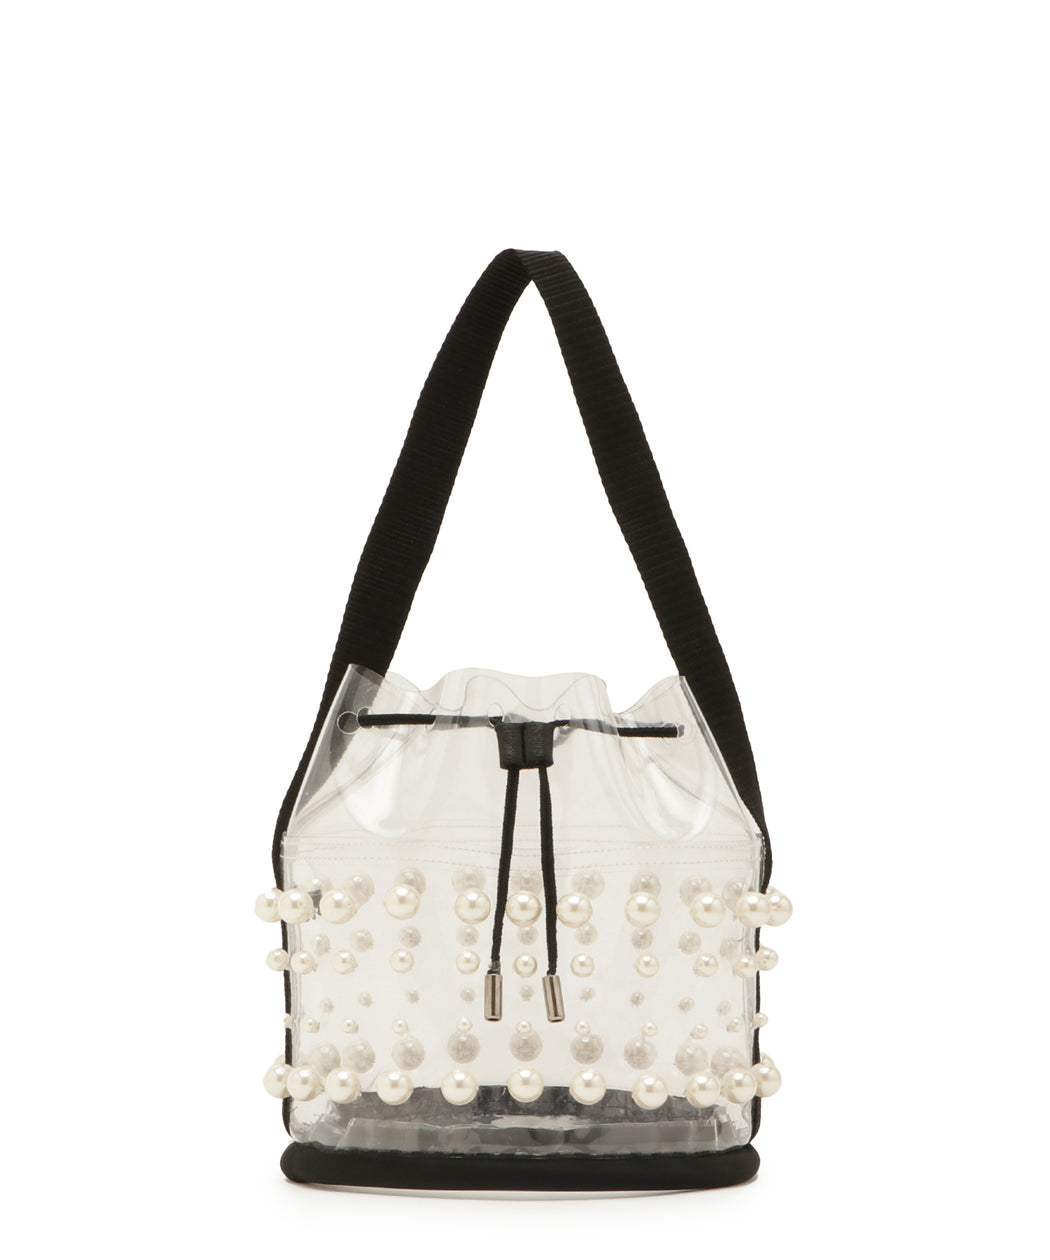 Pearl PVC bucket bag